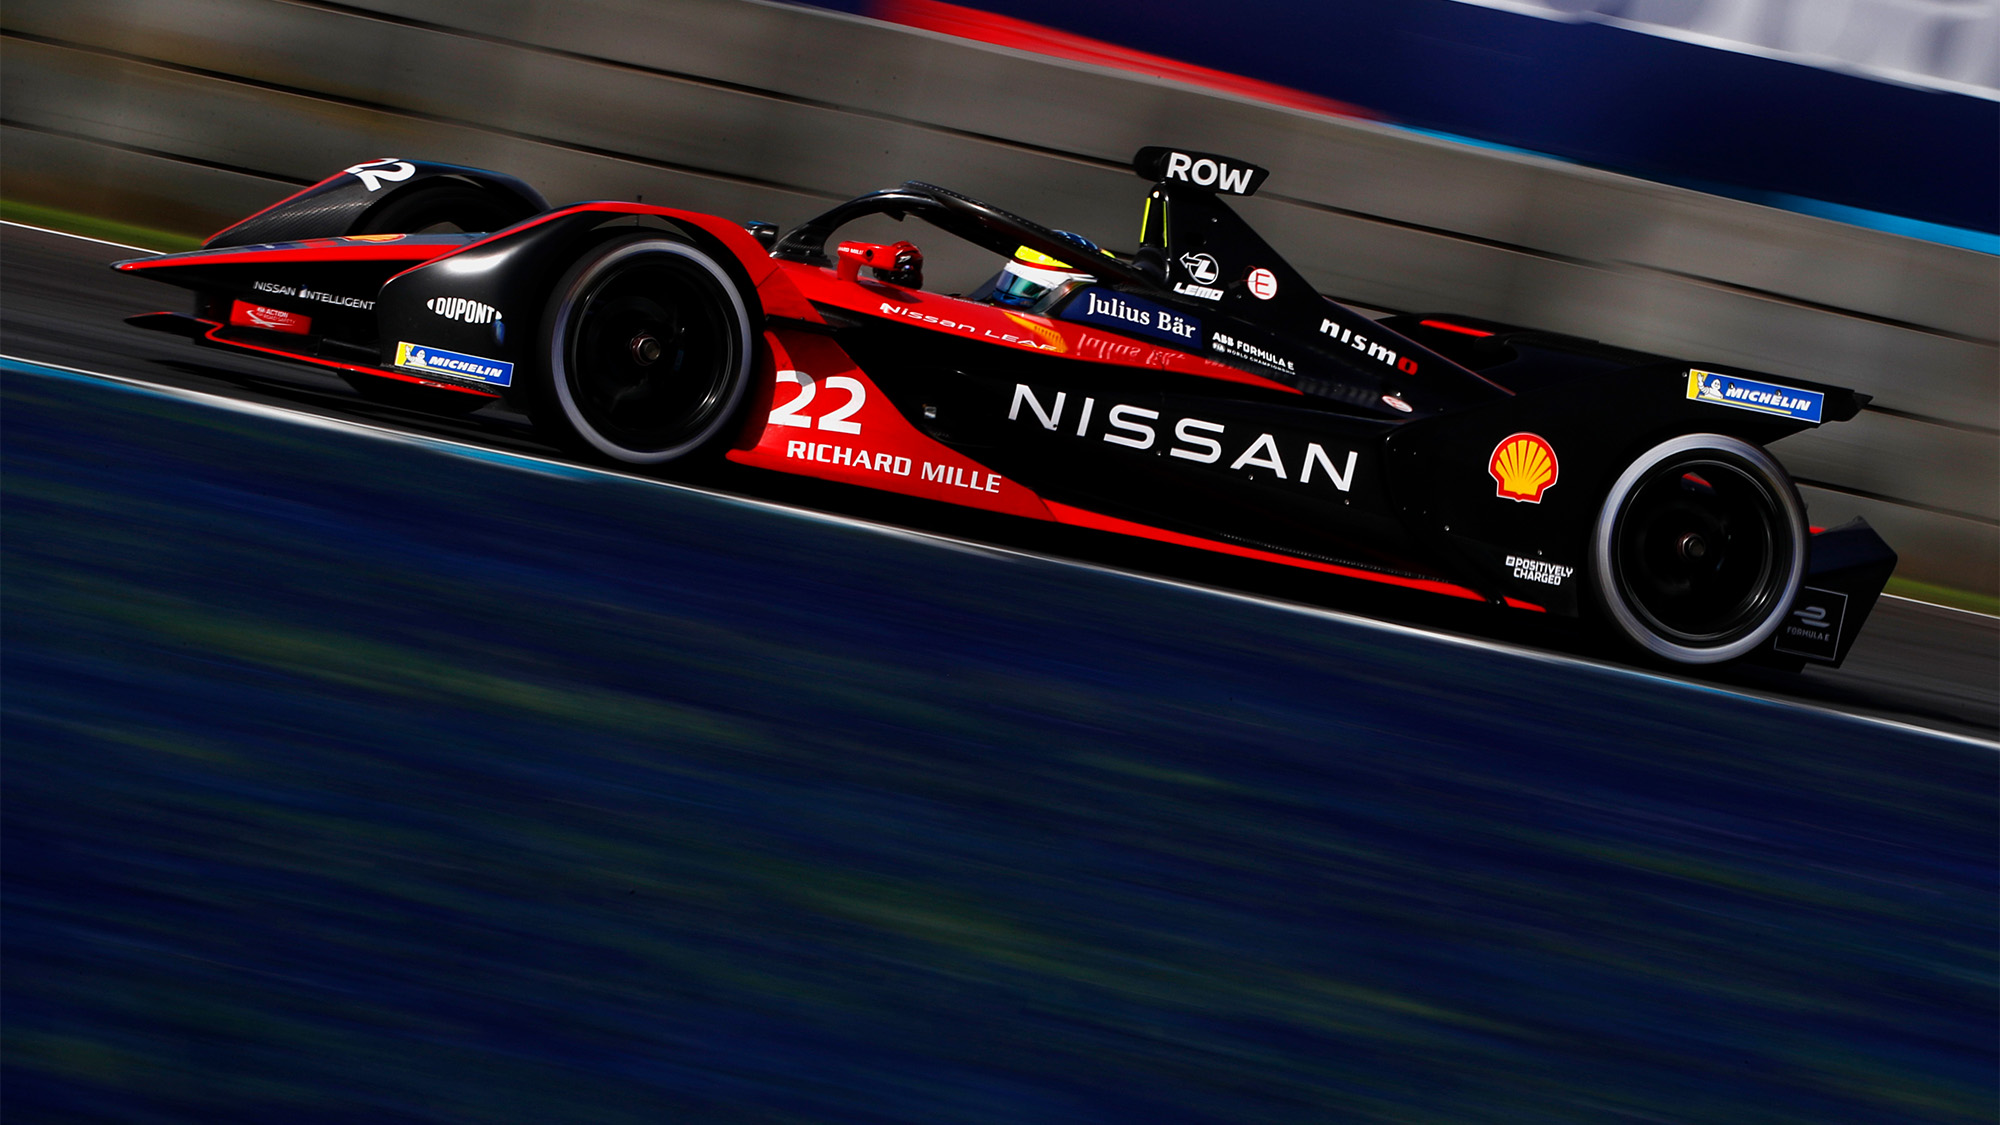 Nissan e dams of Oliver Rowland